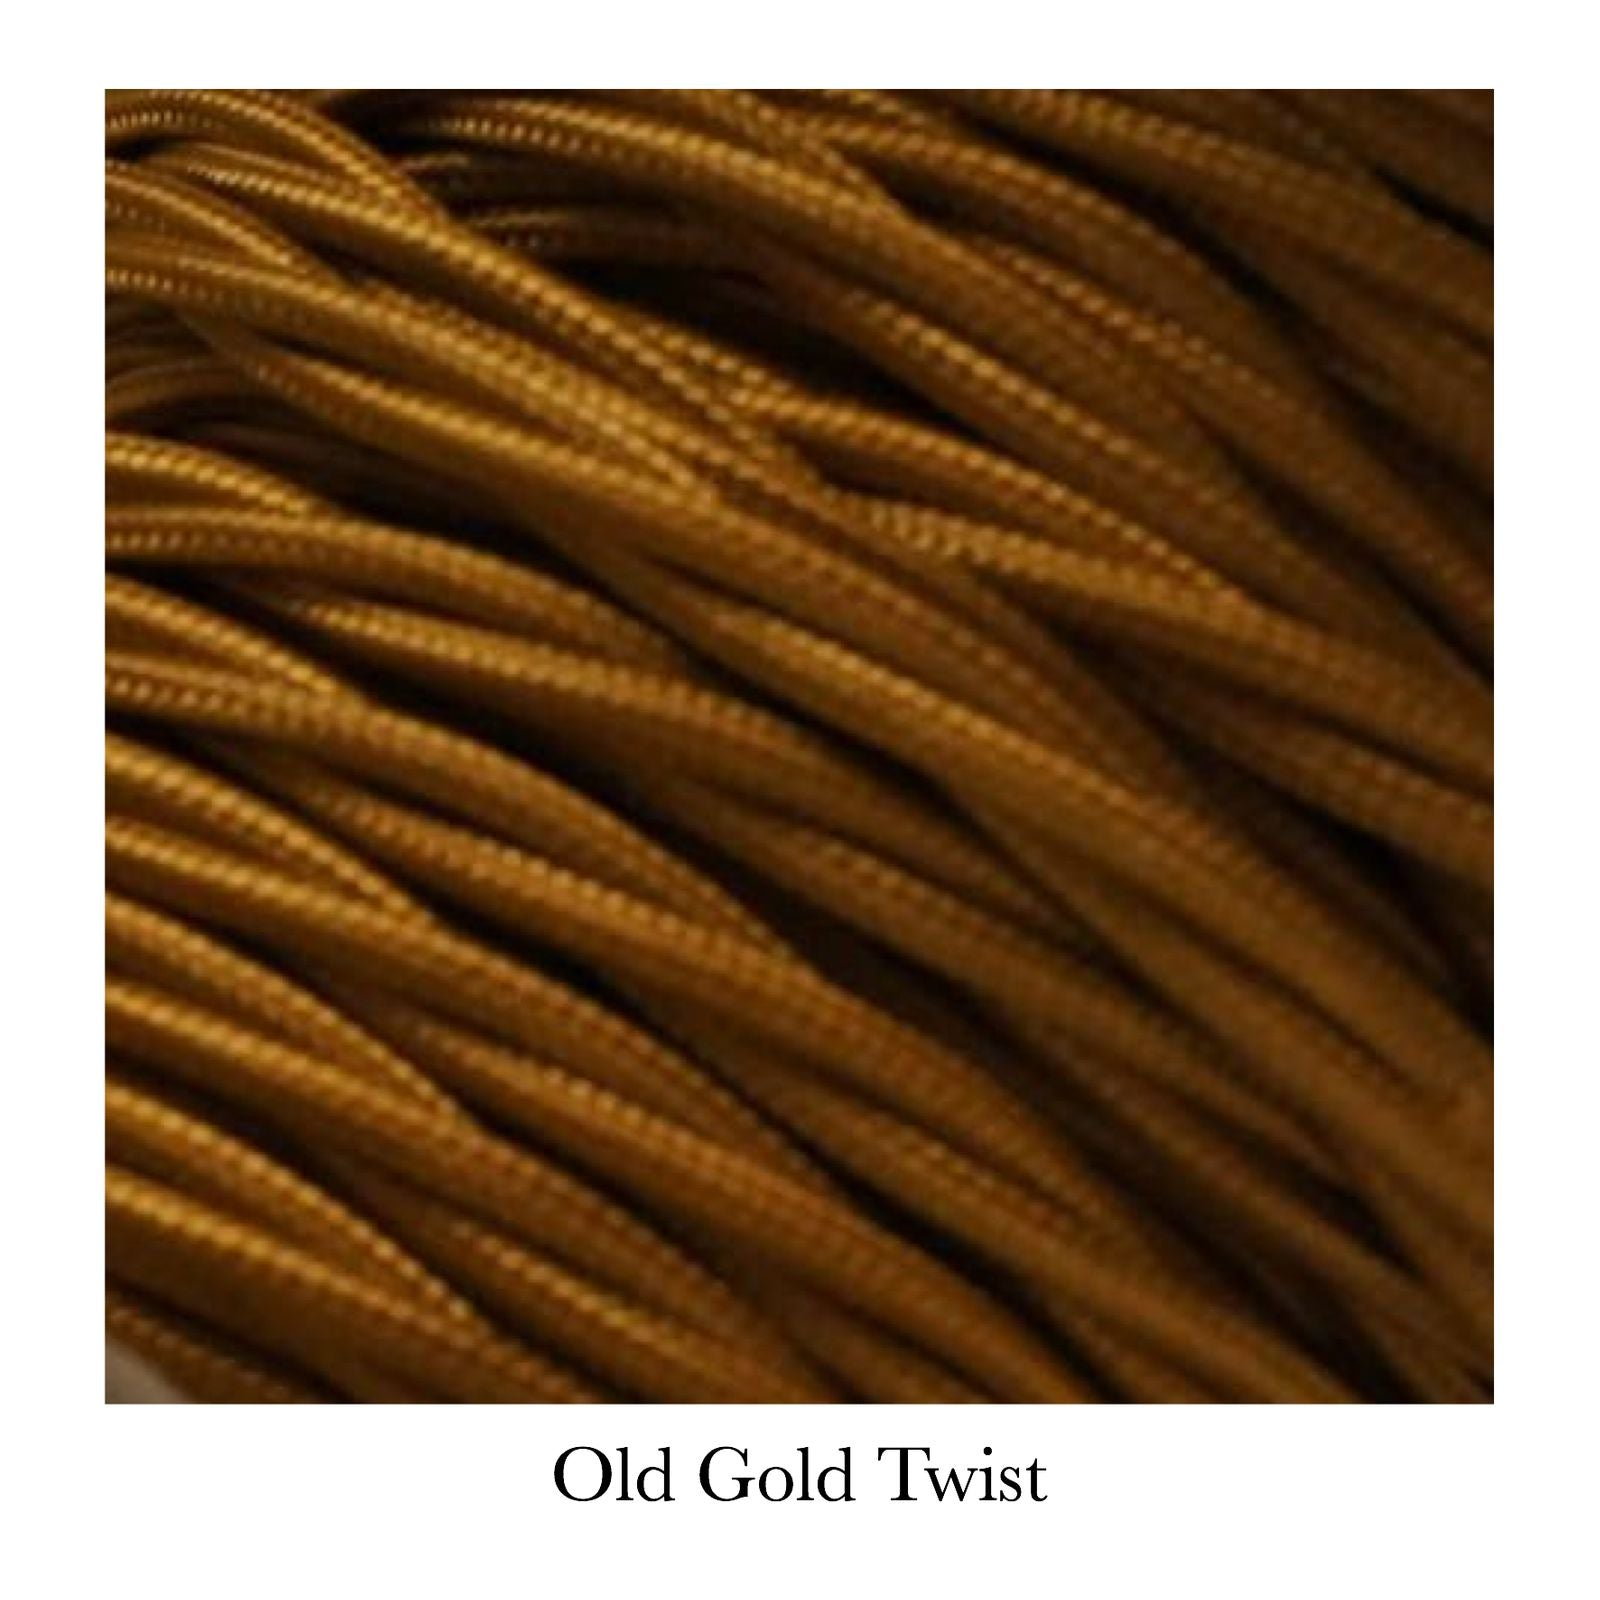 Old Gold Twist